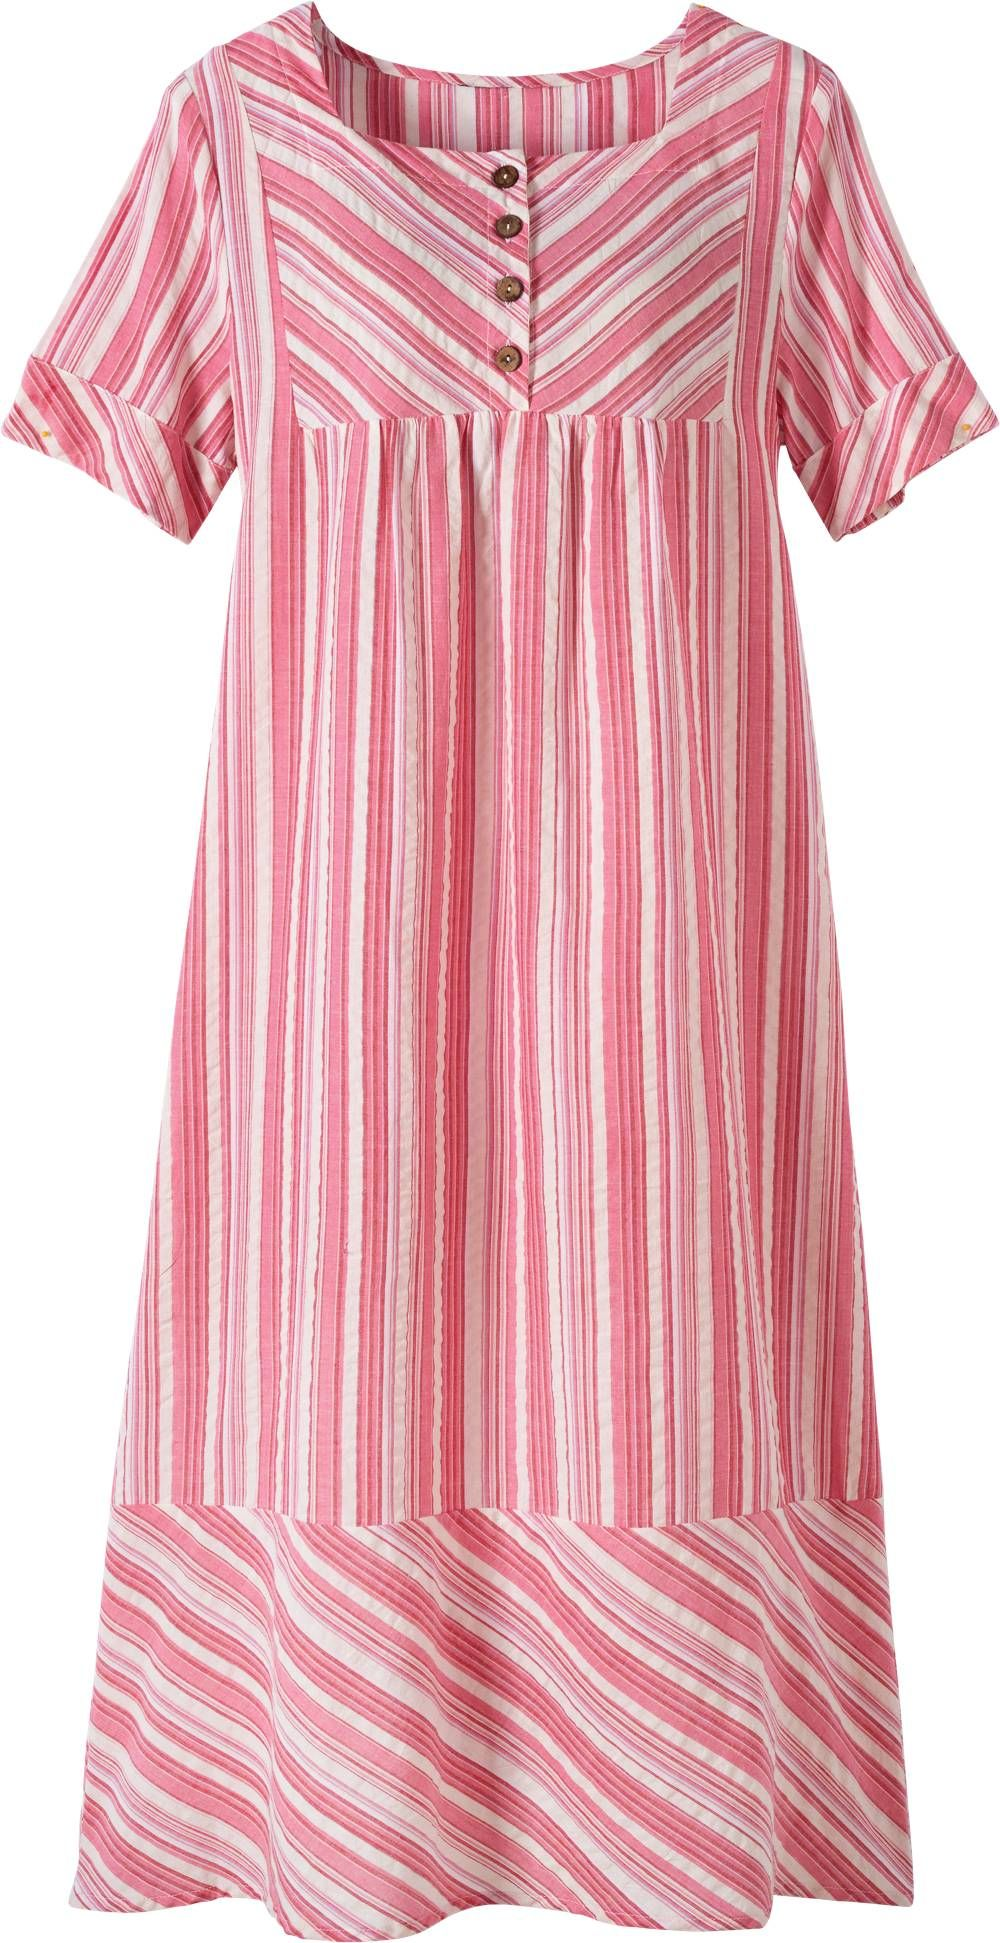 Square Neck Cotton Nightgown  92f85ca38